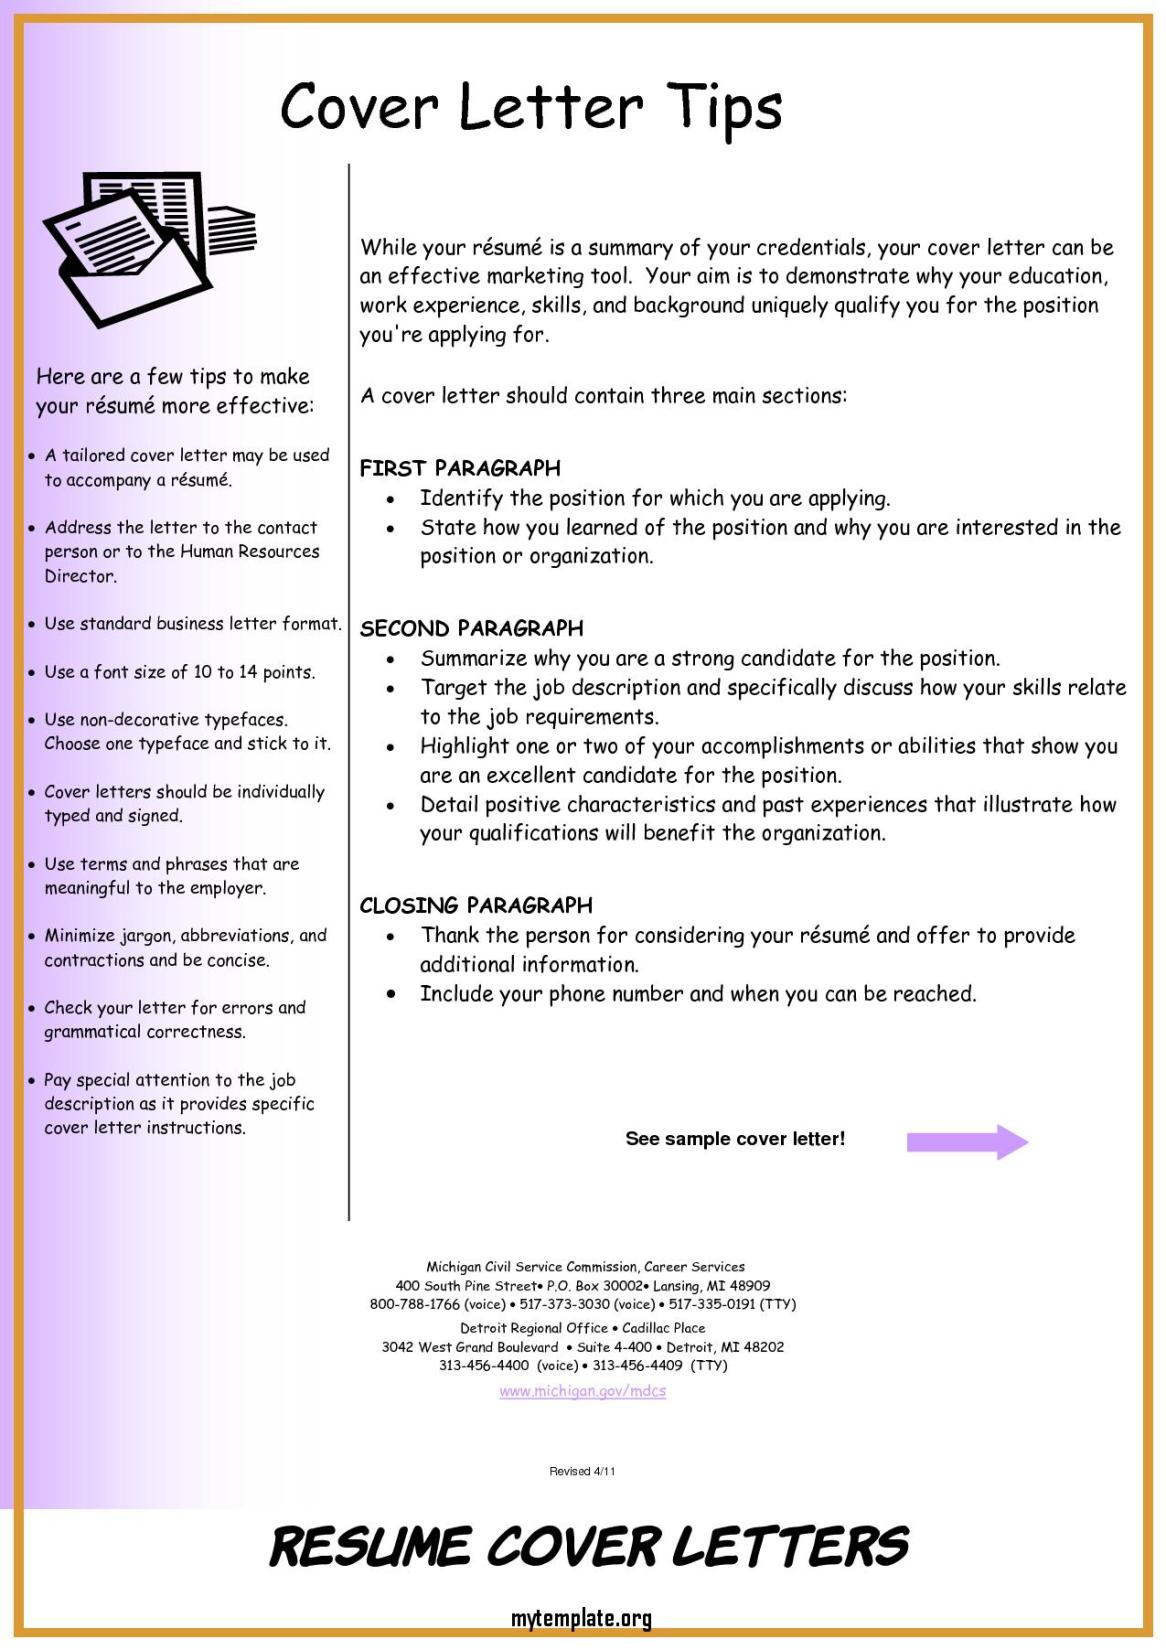 resume cover letters of resume cover letter examples